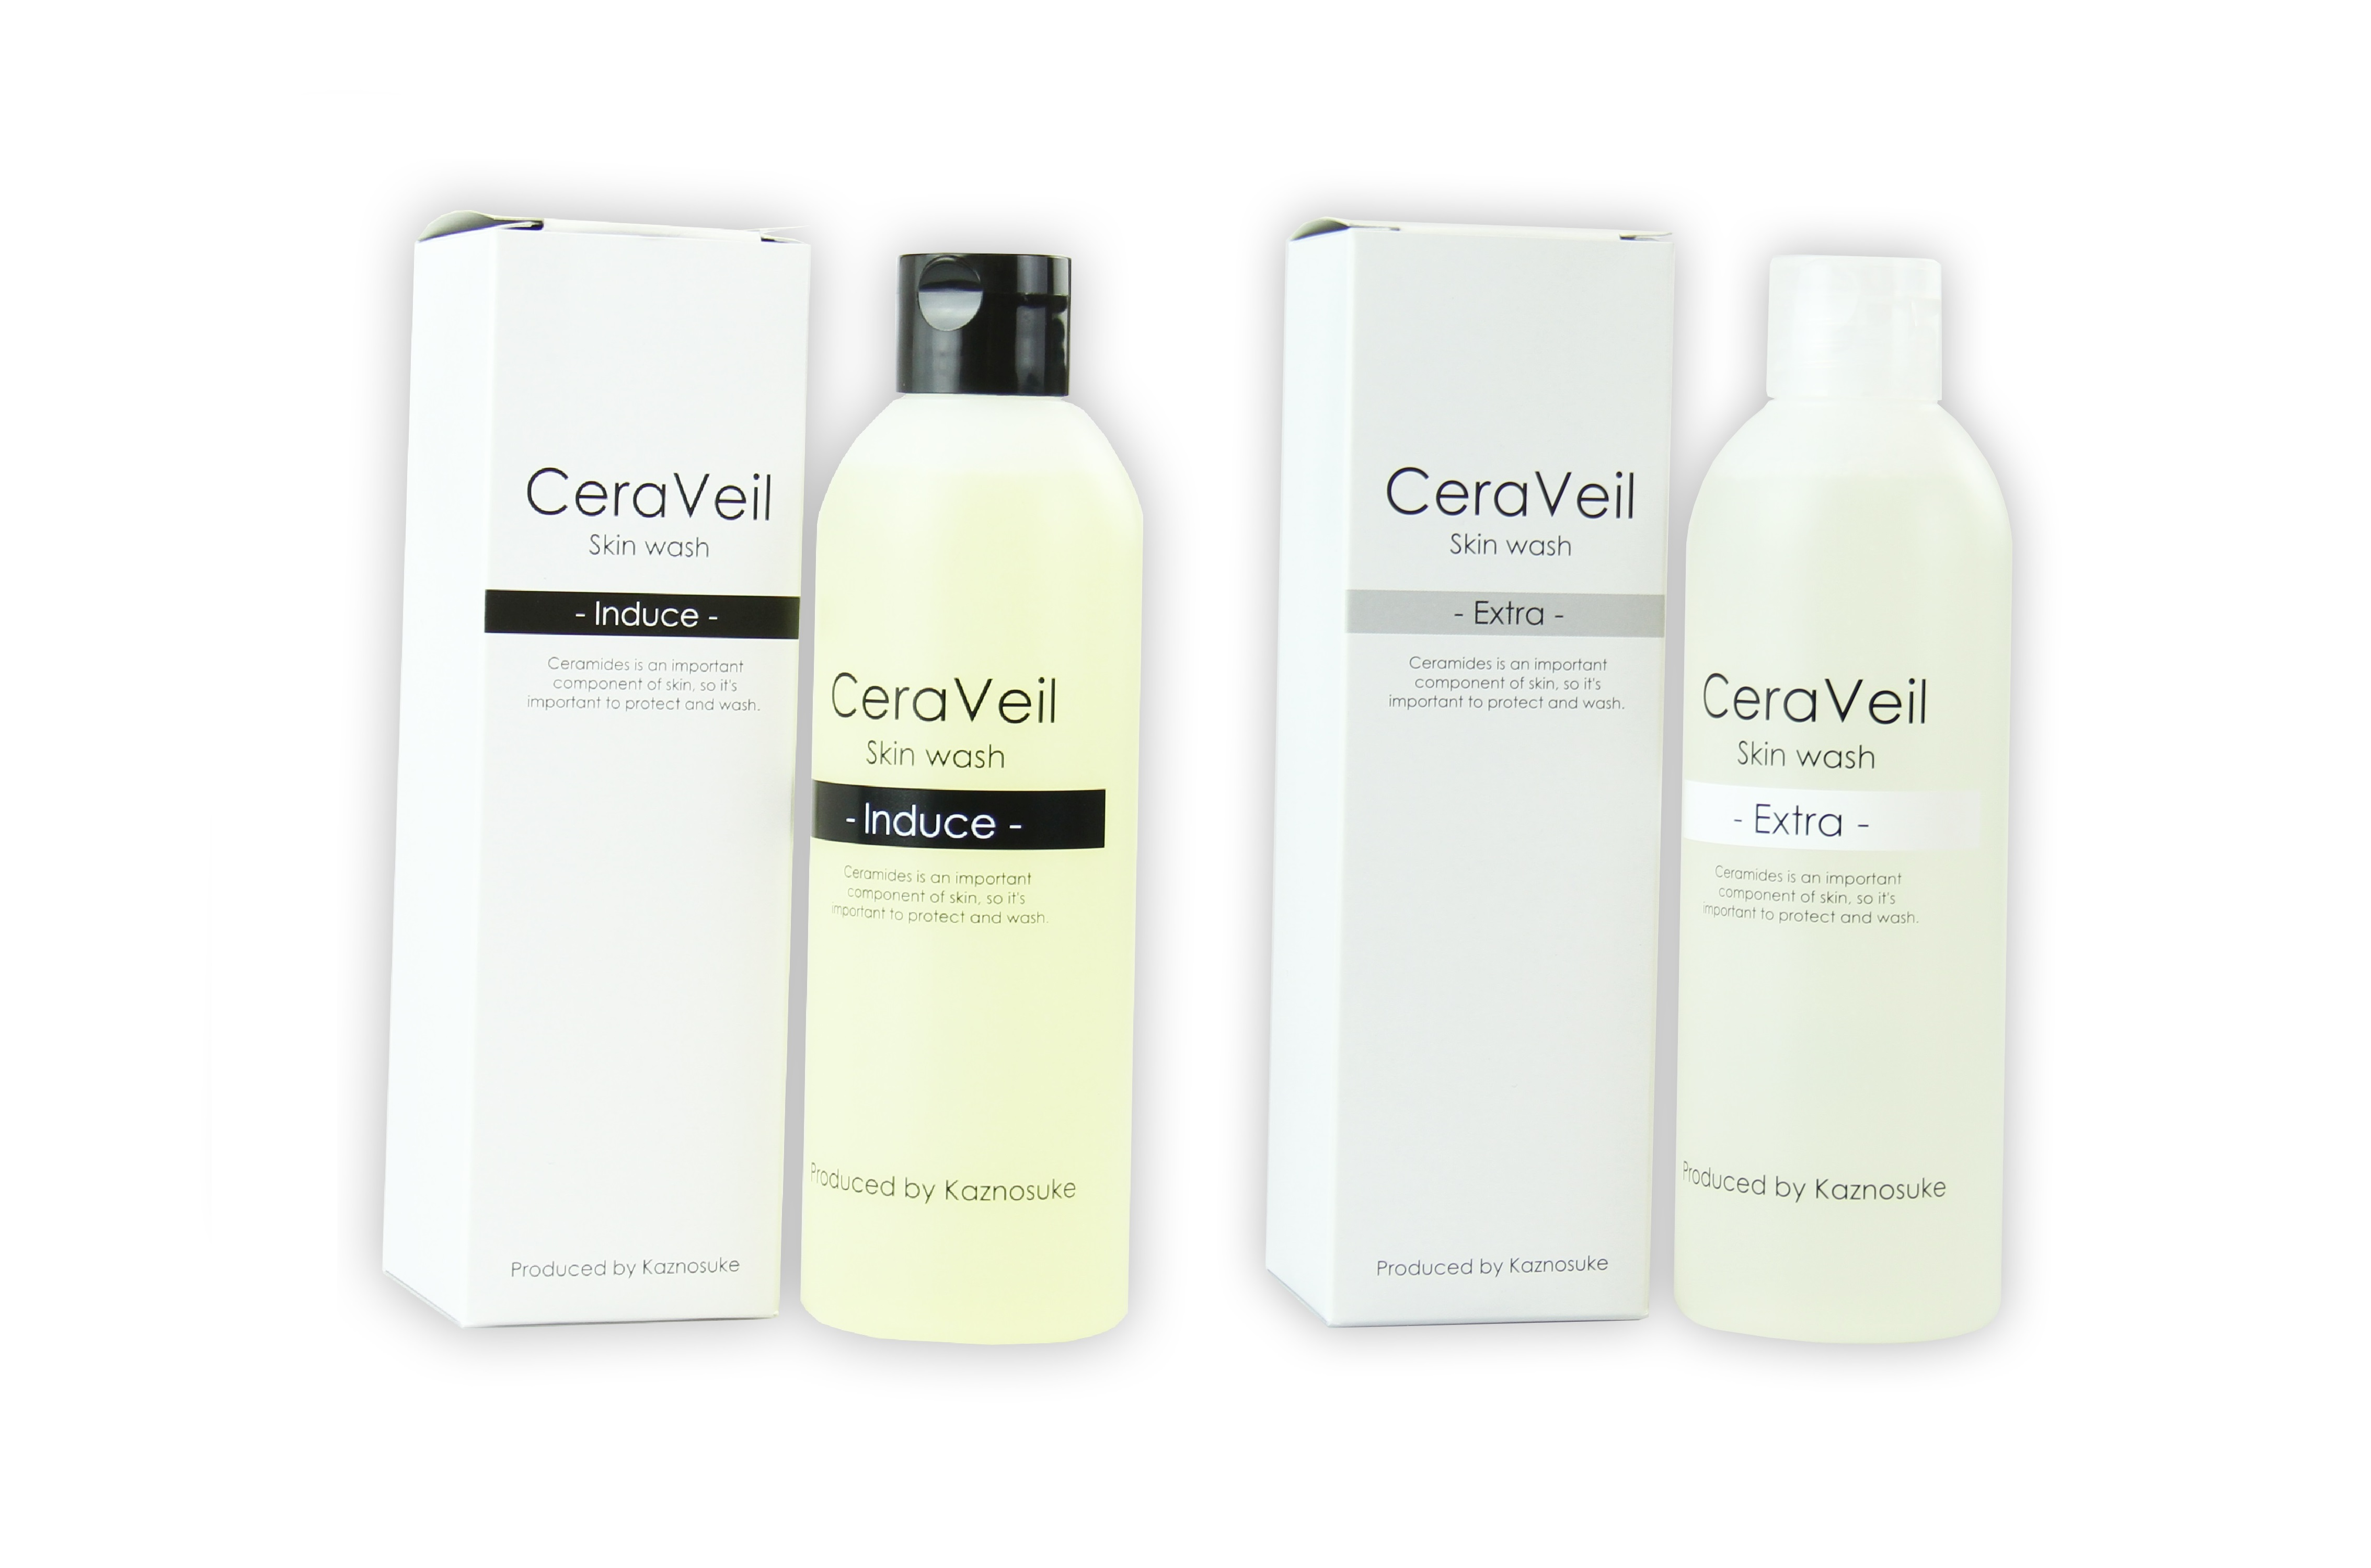 『CeraVeil Skinwash』 の紹介と解説